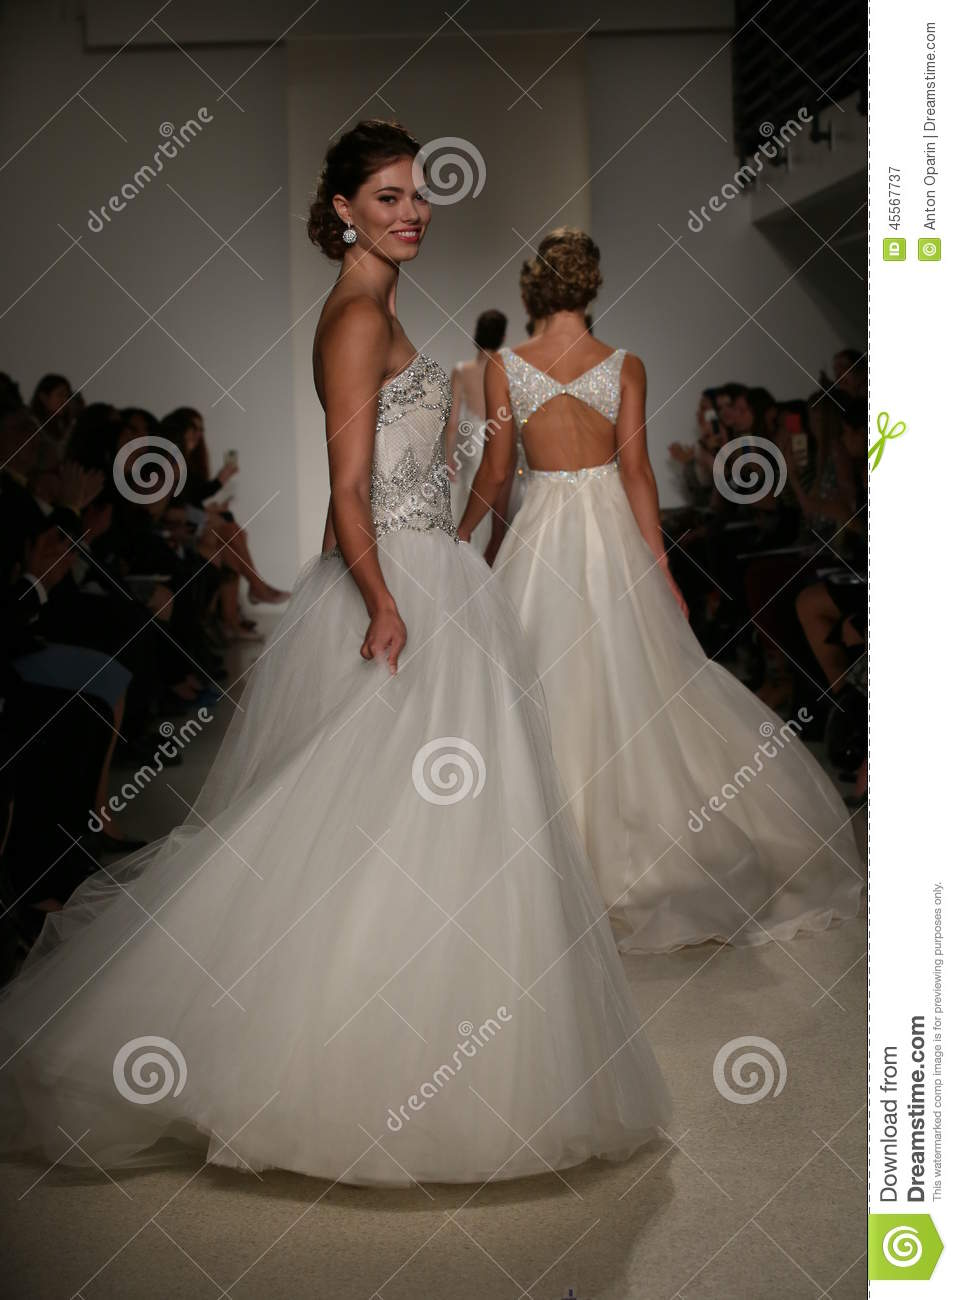 NEW YORK, NY - OCTOBER 10: Models walk the runway finale during the Anne Barge Fall 2015 Bridal Collection